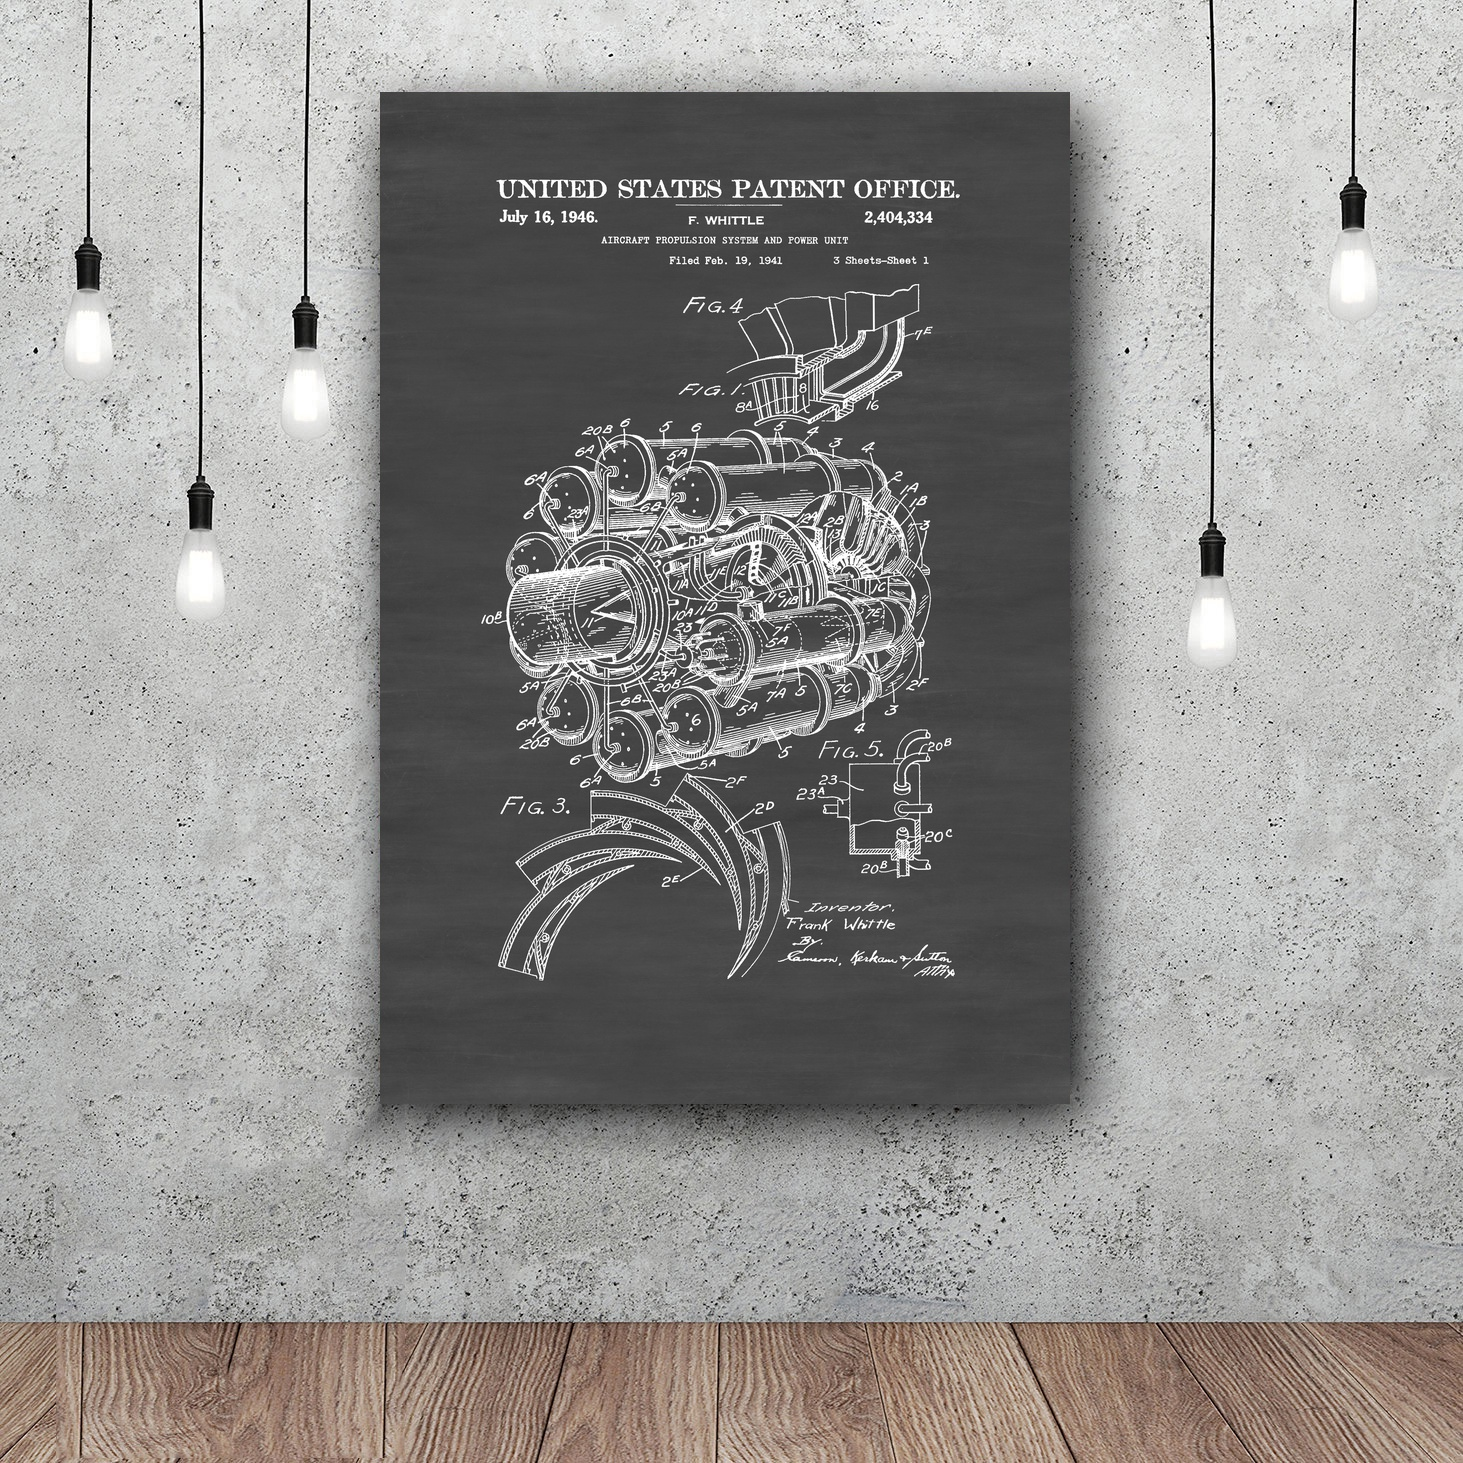 Blueprint for black power copy aircraft propulsion patent art silk blueprint for black power copy aircraft propulsion patent art silk poster home decor 12x18 24x36inch in painting calligraphy from home garden on malvernweather Gallery